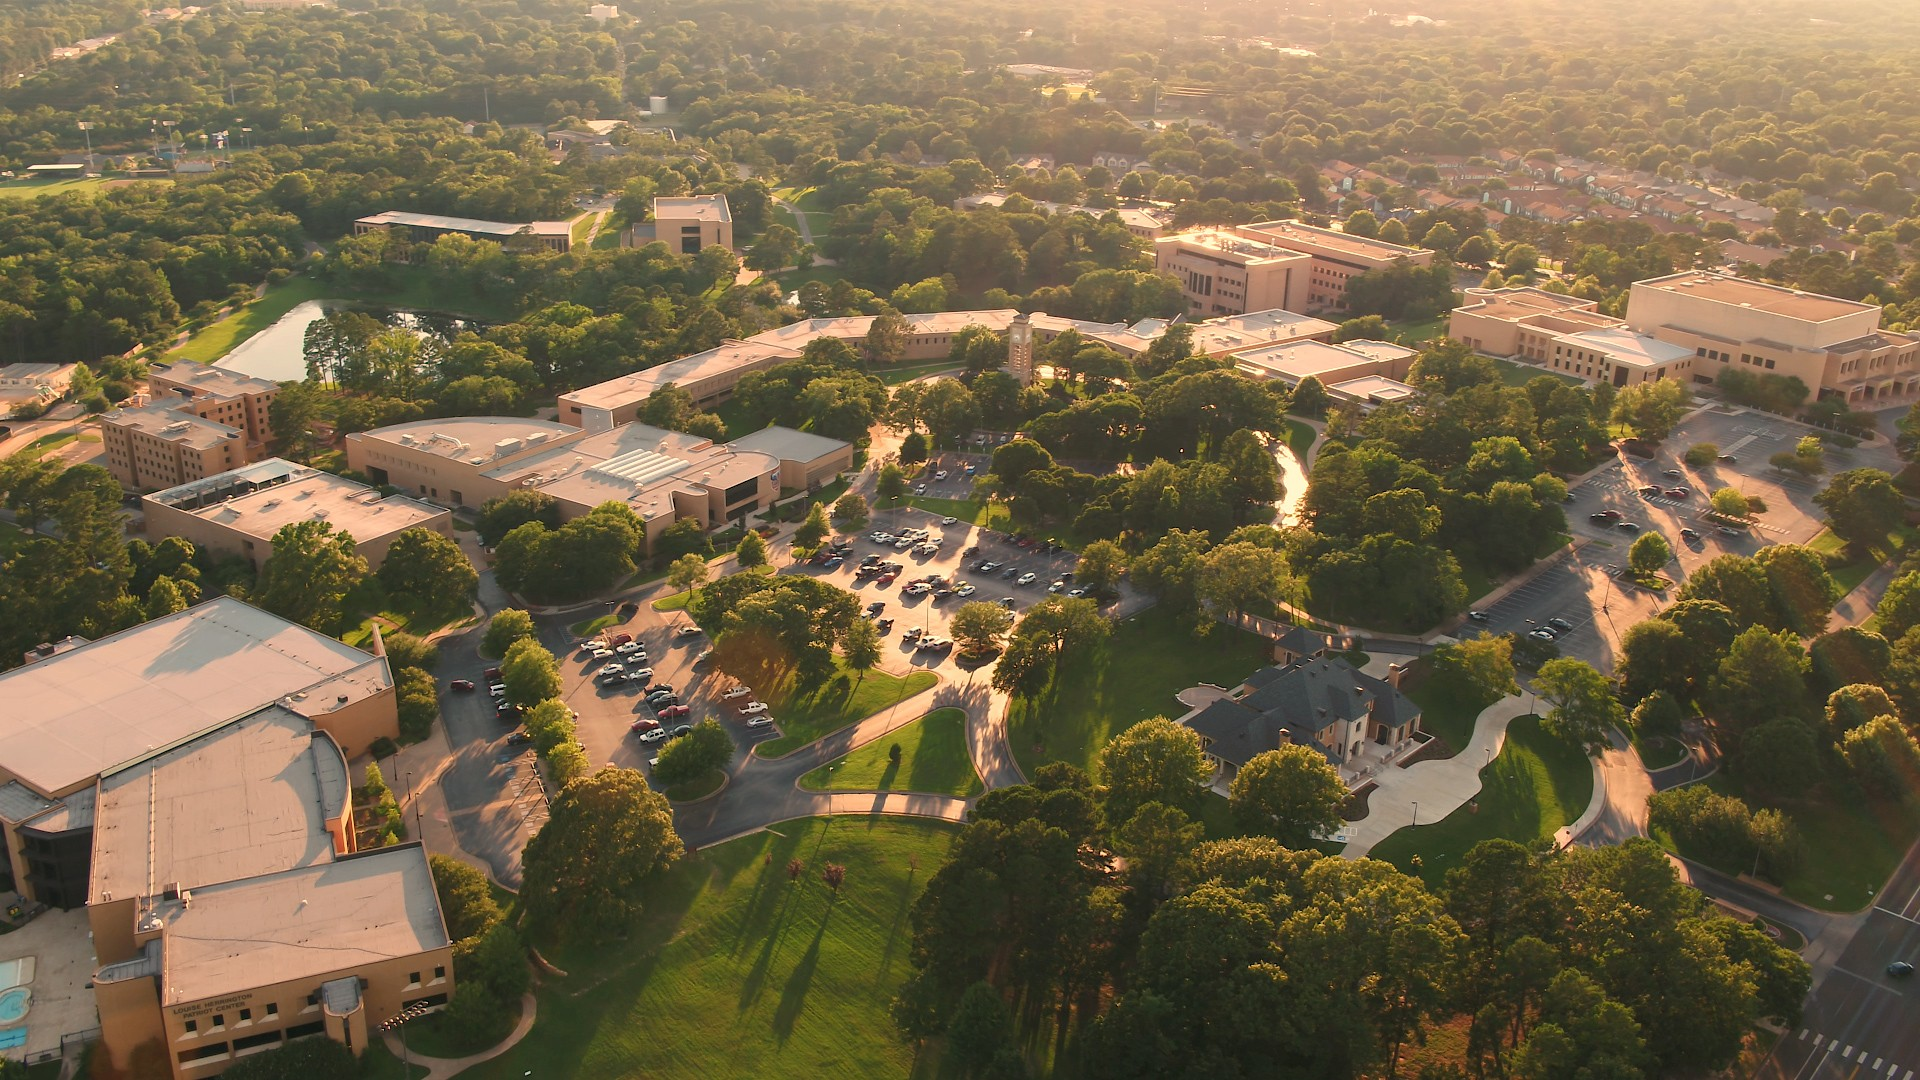 University of Texas at Tyler cover image